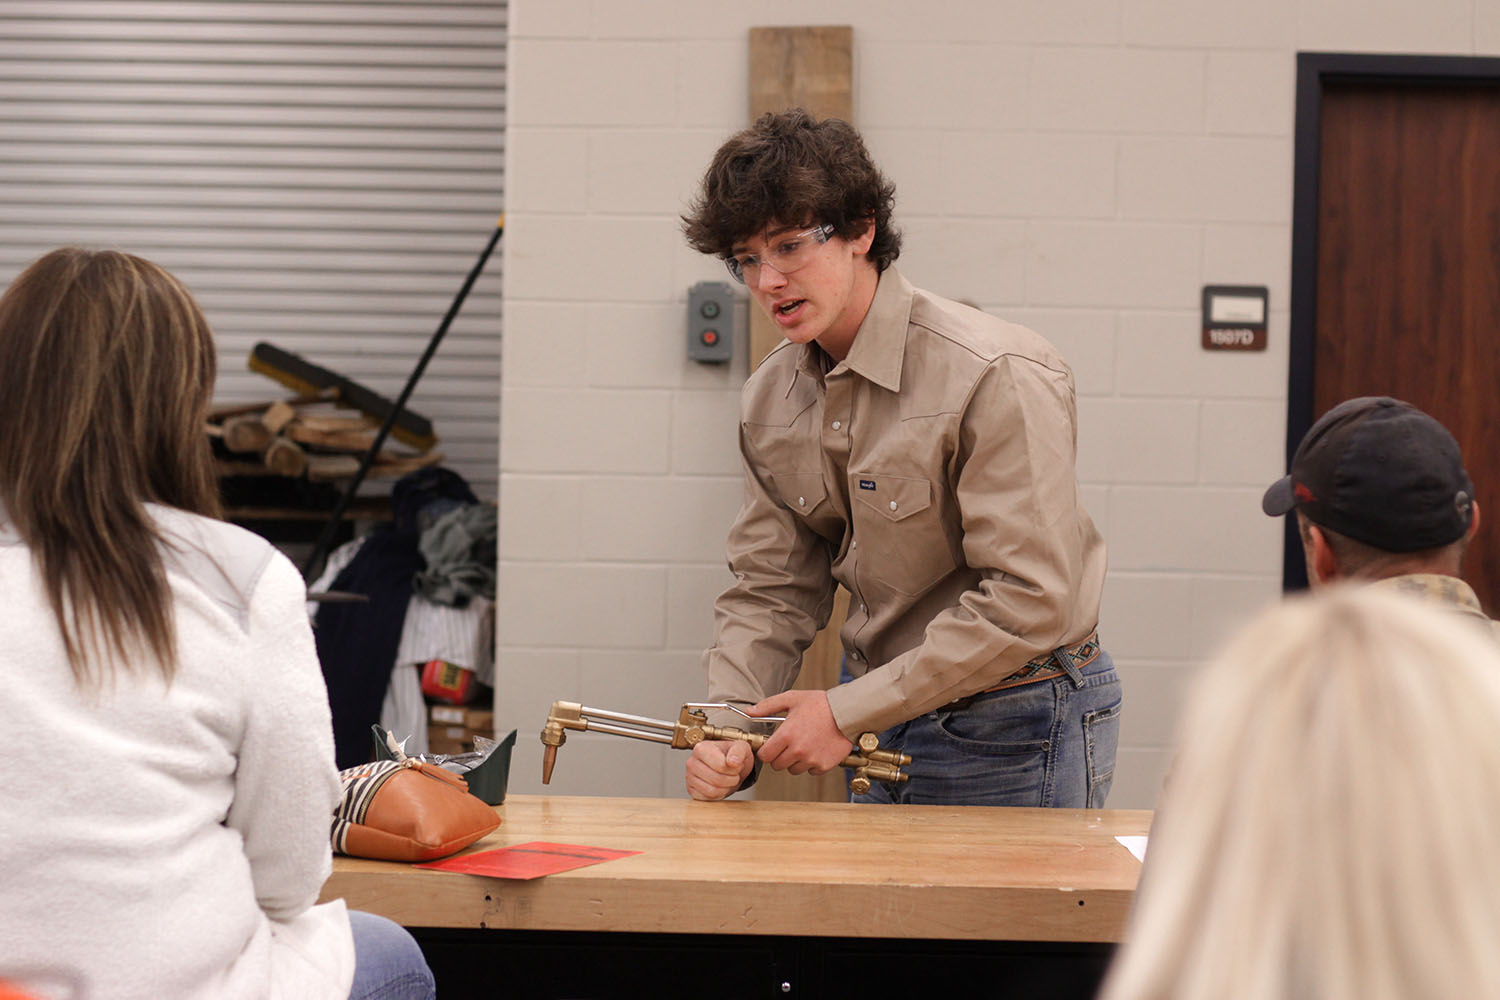 FFA student sophomore Aaron Fox competes on the Senior Skills team at the FFA LDE showcase in late October.